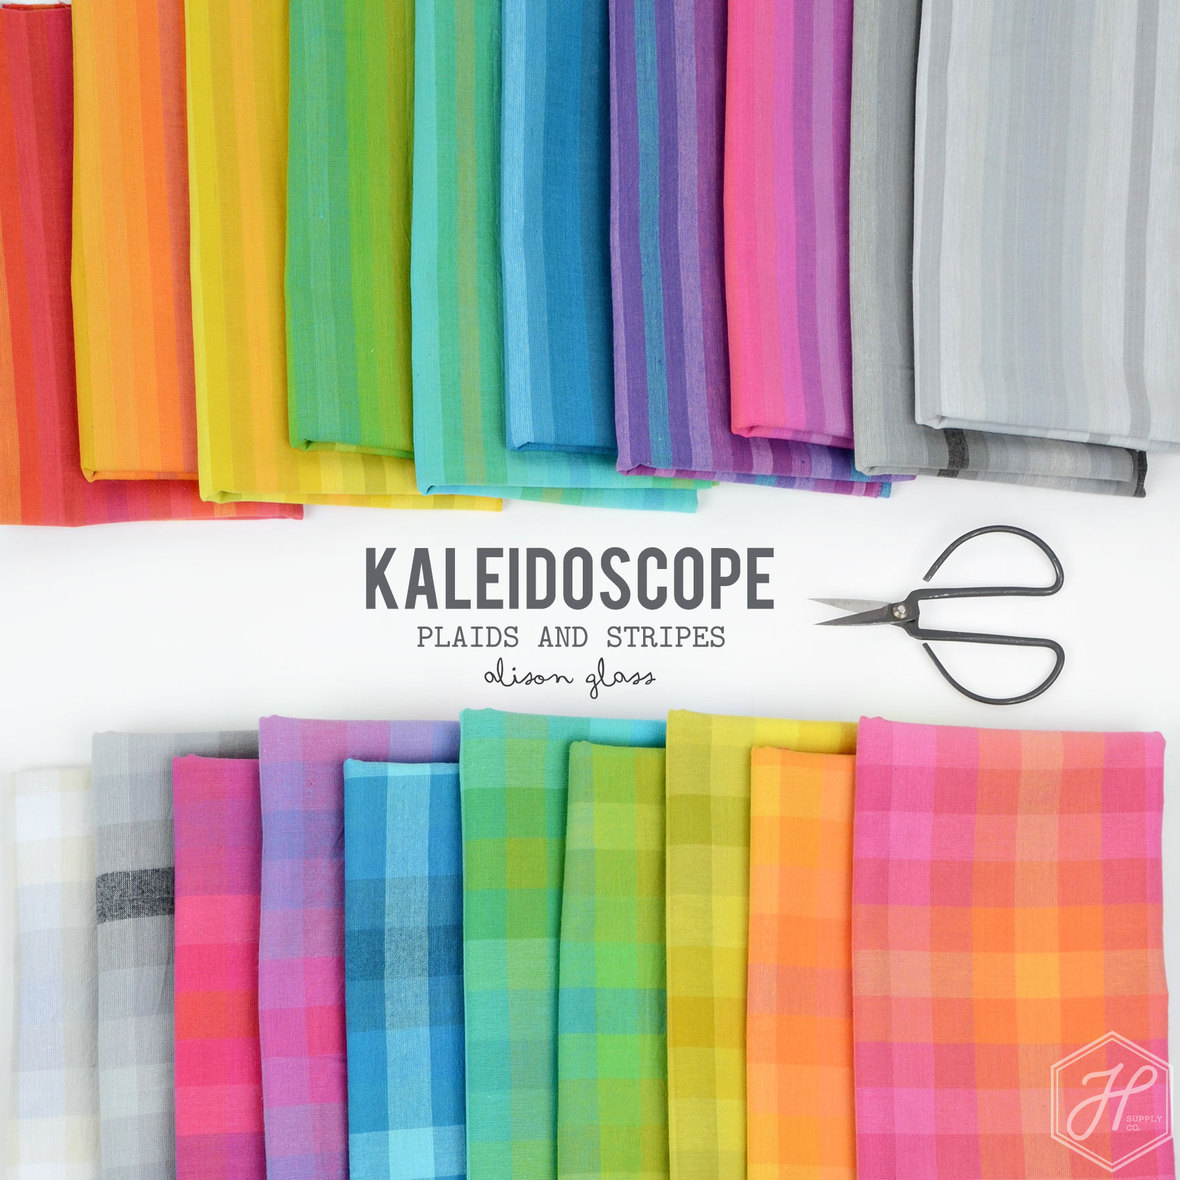 Kaleidoscope-Plaid-and-Stripe-Alison-Glass-for-Andover-fabric-at-Hawthorne-Supply-Co